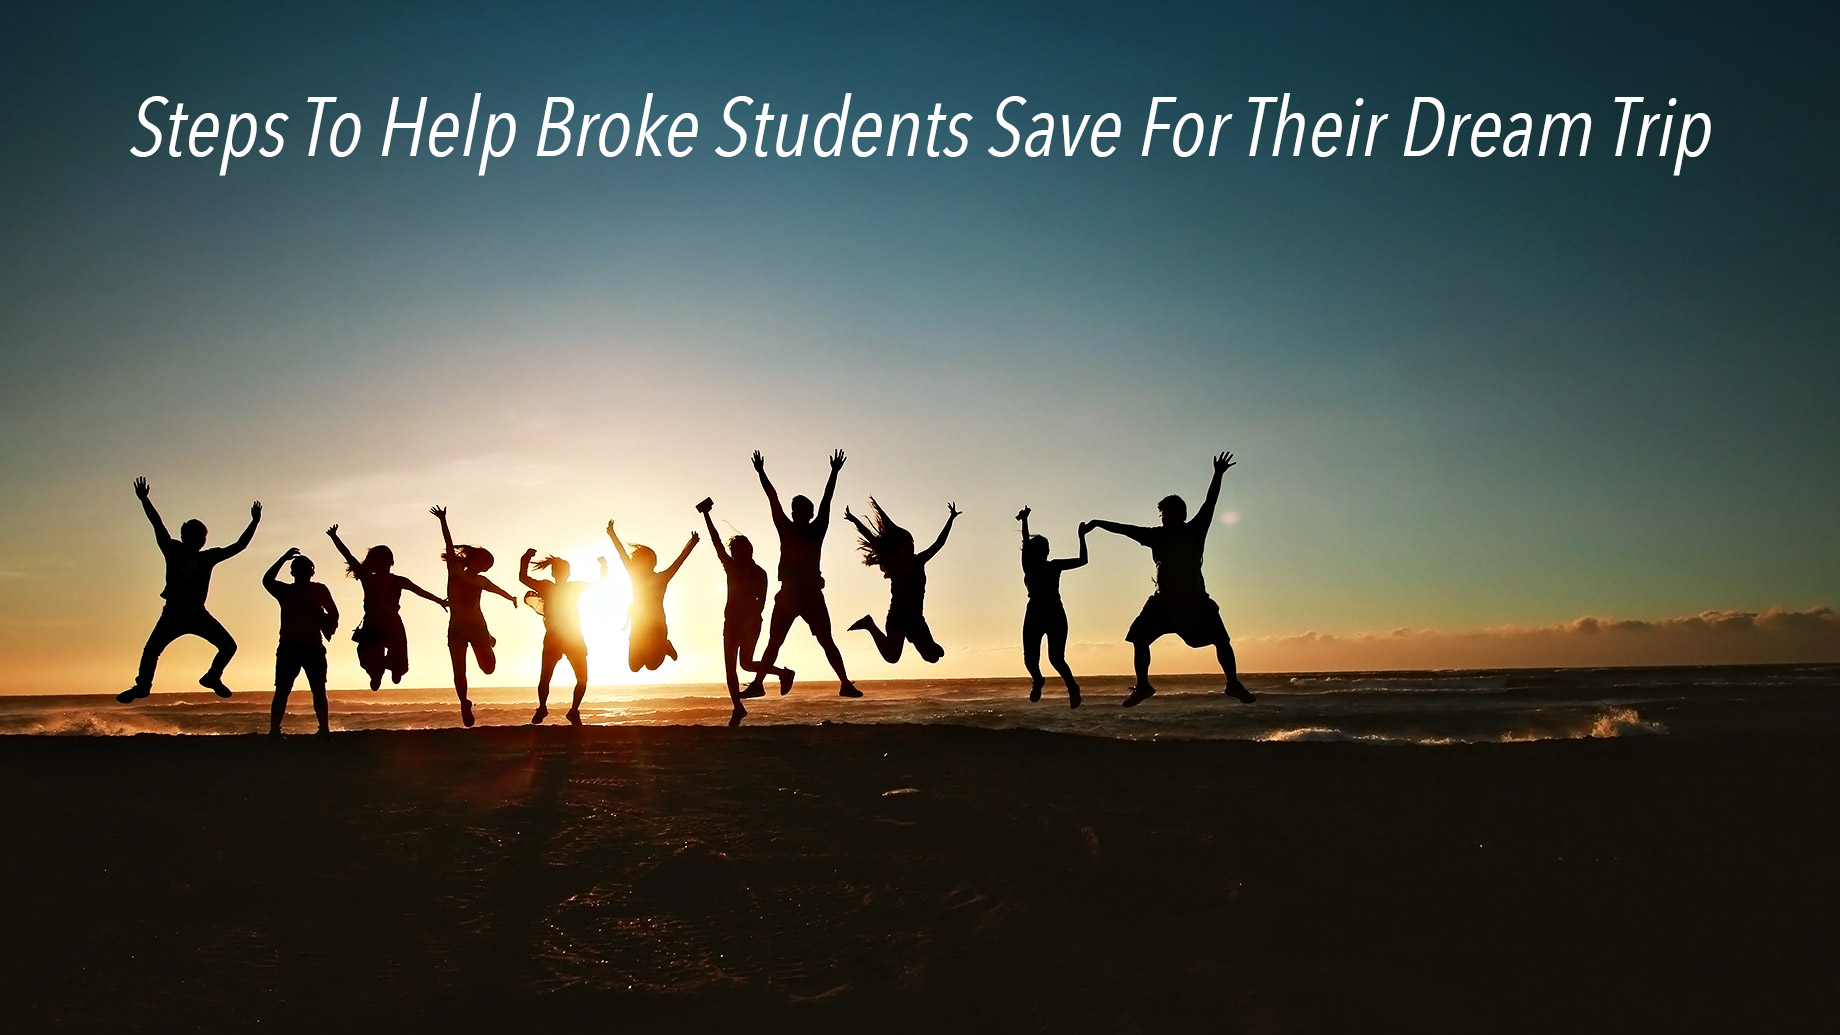 Steps To Help Broke Students Save For Their Dream Trip